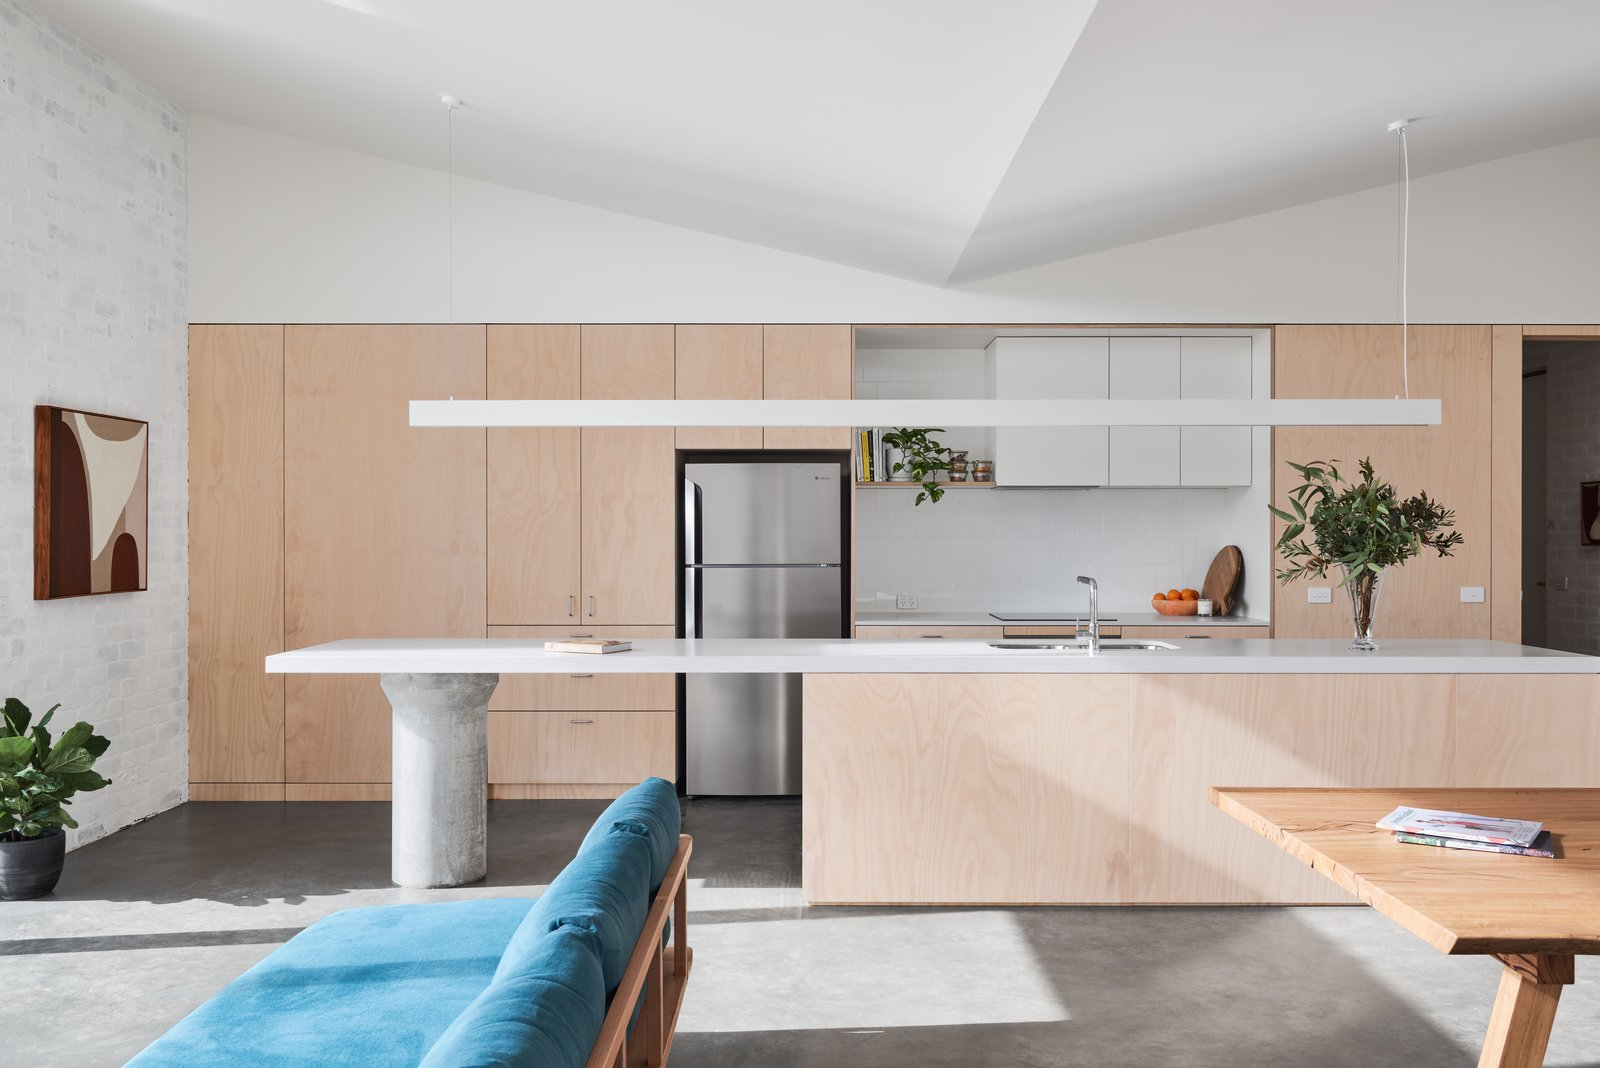 North-facing living/dining for passive solar heating, and butterfly-shaped ceiling for cross-flow ventilation cooling. Australian-made couch by Pop & Scott. Recycled timber dining table by Finding The Grain.